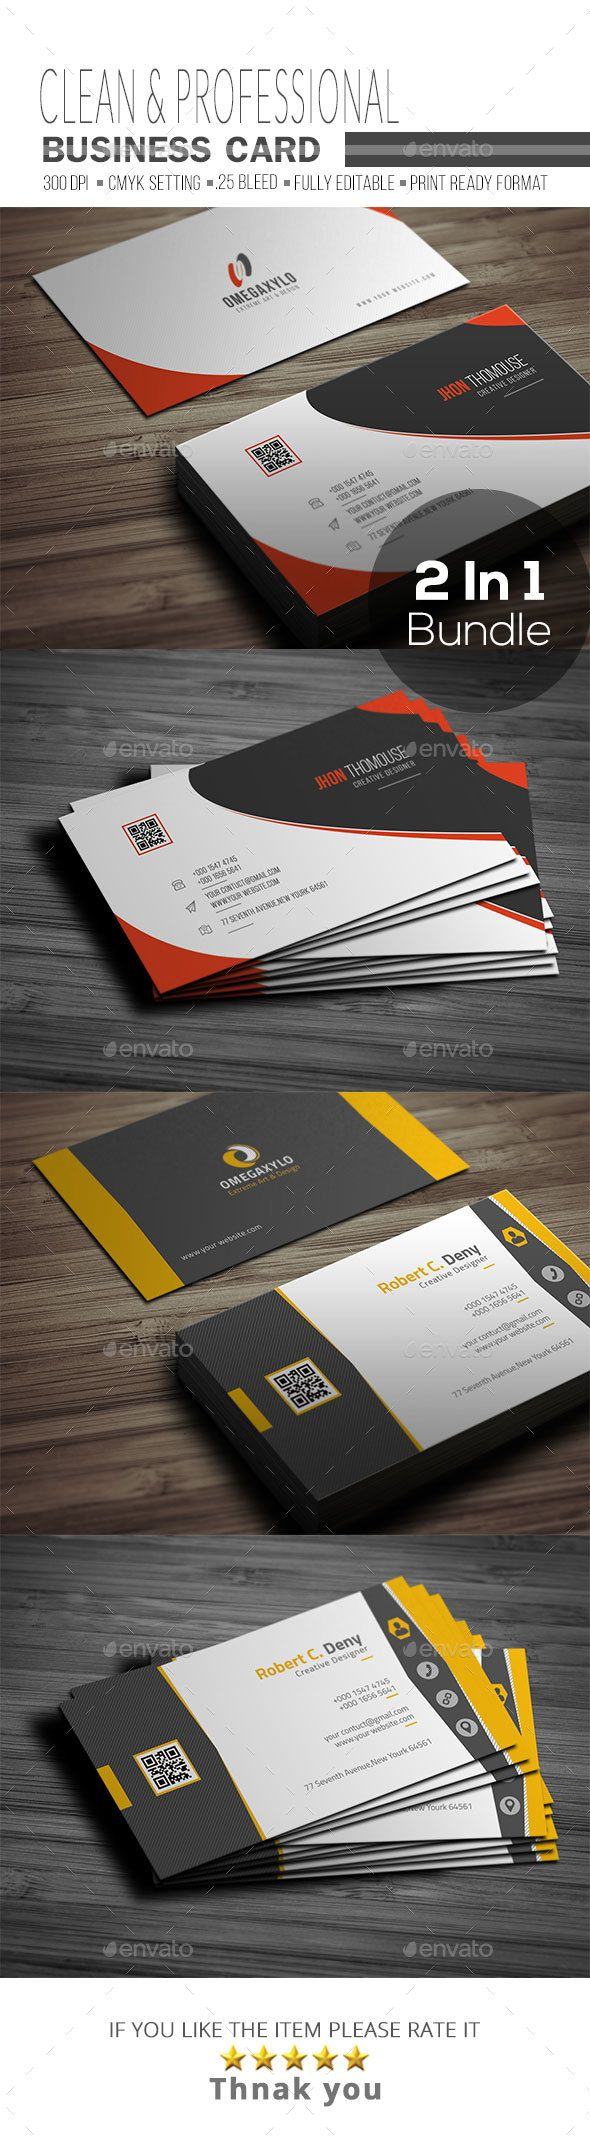 Business card bundle 2 in 1 pinterest cartes de visita visita business card bundle 2 in 1 corporate business cards download here reheart Choice Image